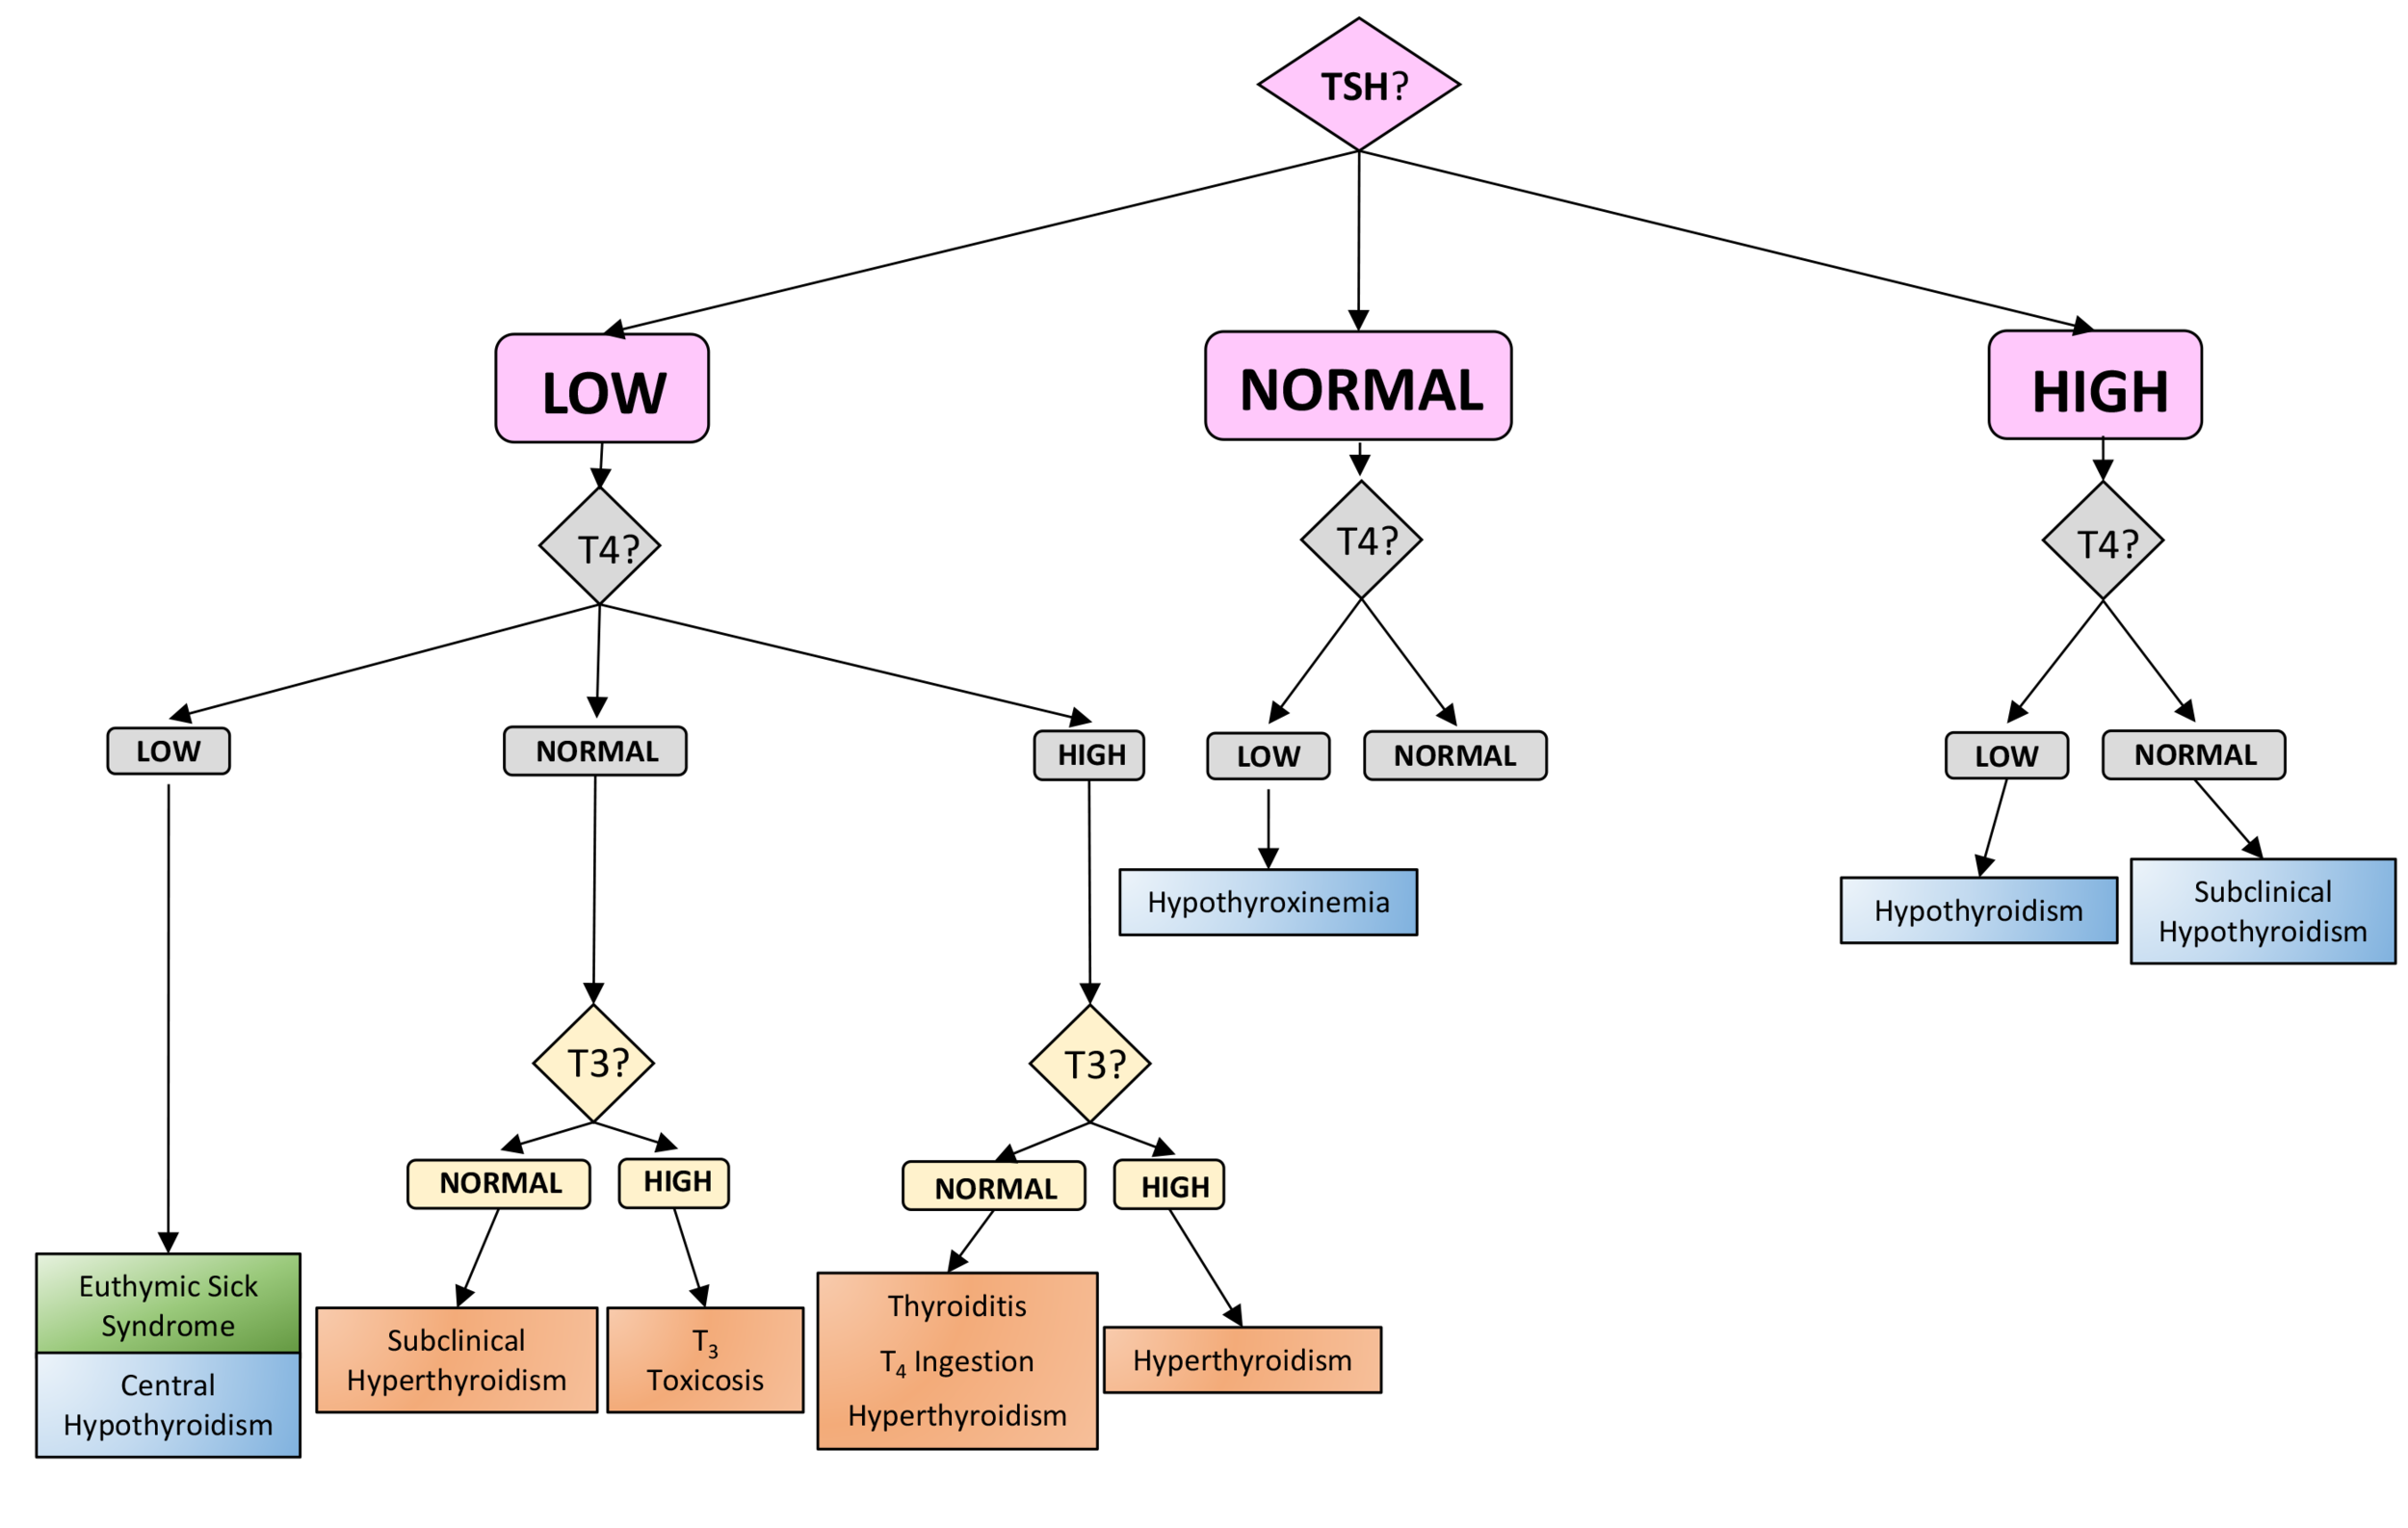 An Overview of thyroid test interpretation in the Emergency department